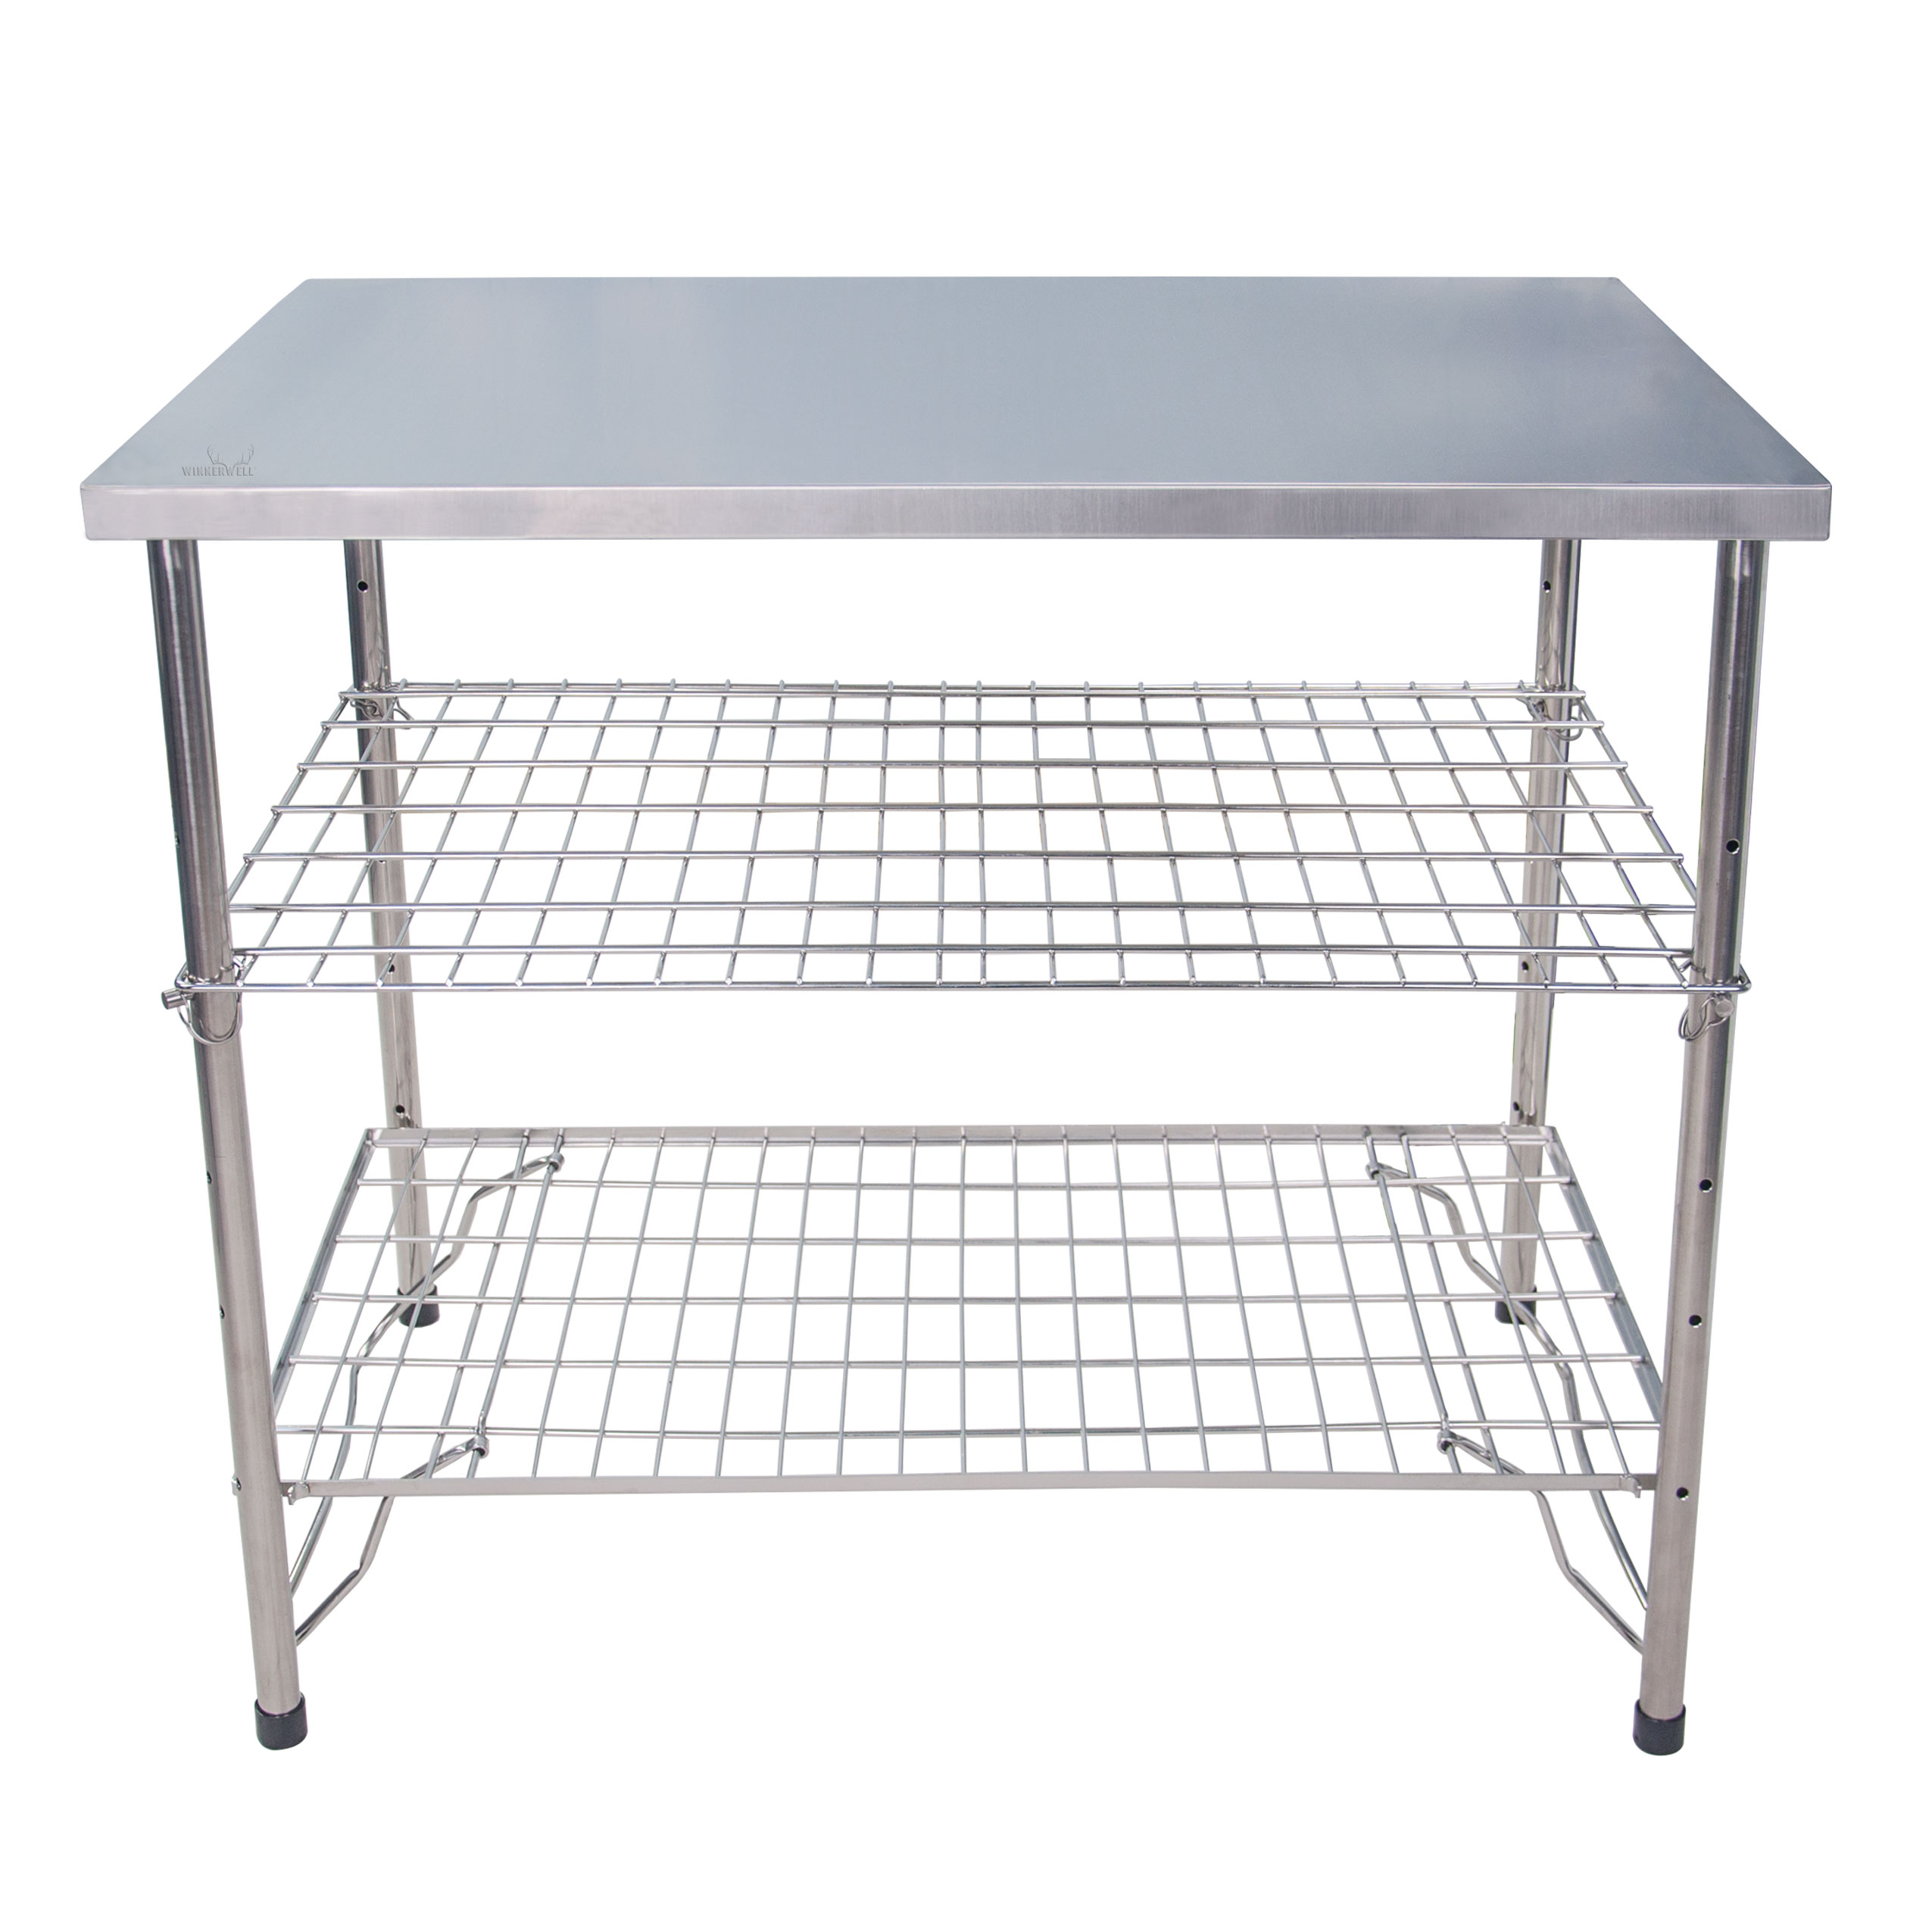 Camping Table High Set  SKU 910442